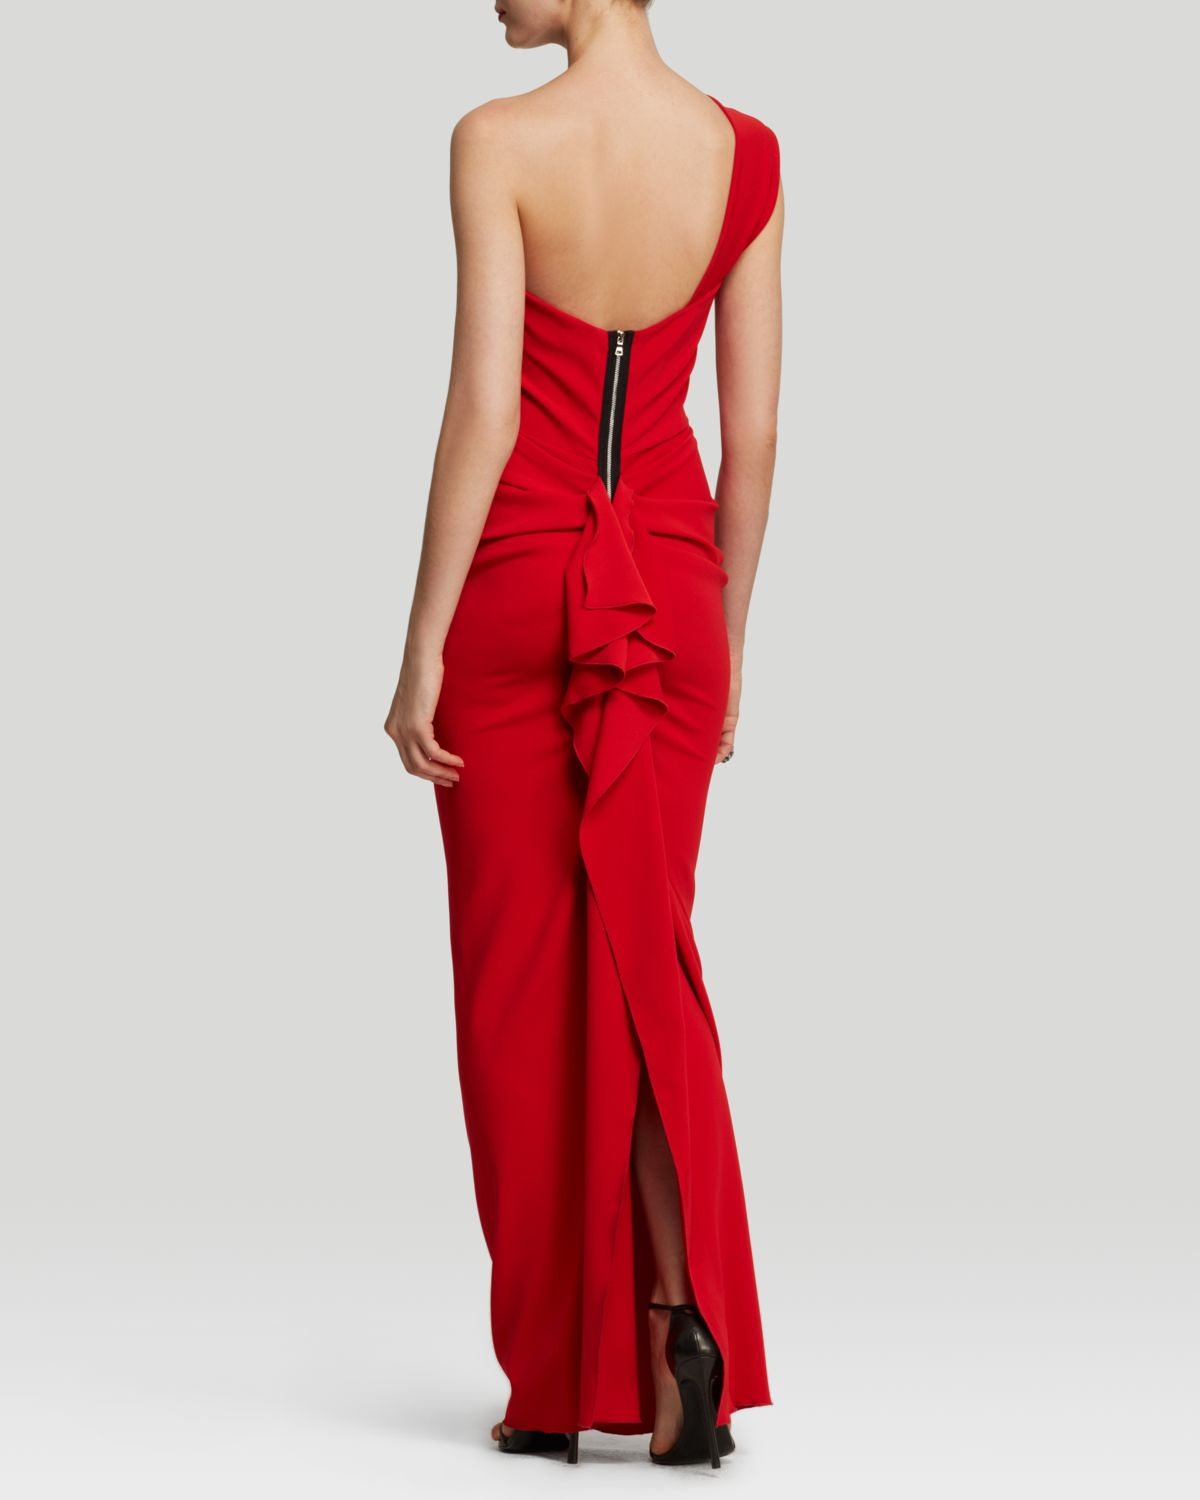 31ac6925680c6 Lyst - Nicole Bakti Gown - One Shoulder Ruffle Back in Red